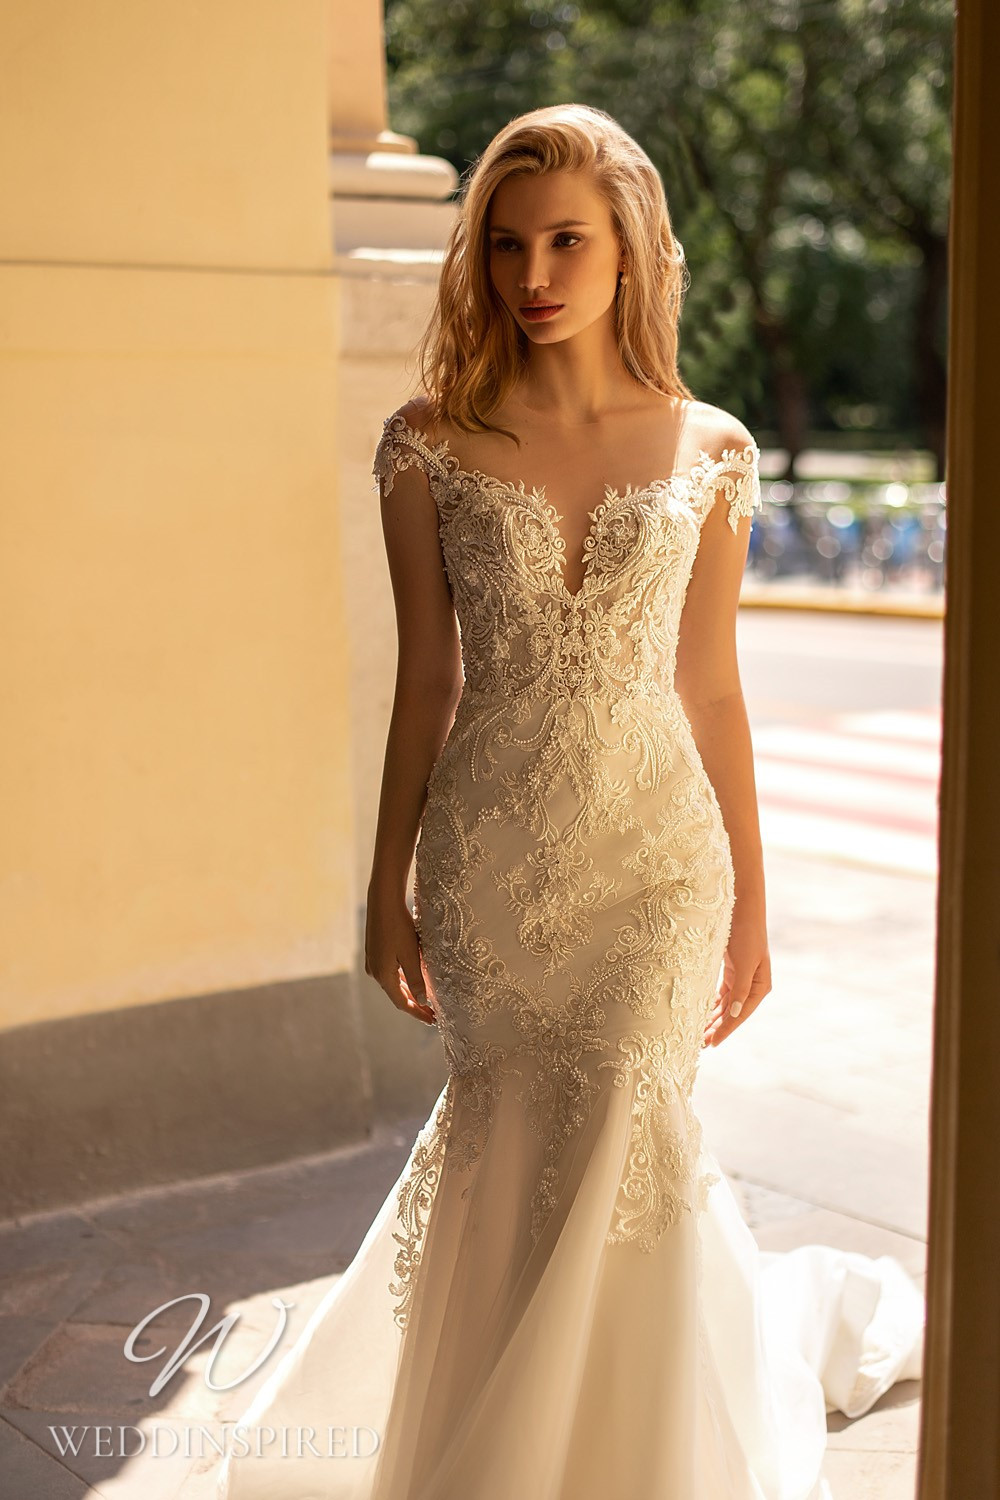 A WONÁ Concept 2021 ivory lace and tulle off the shoulder mermaid wedding dress